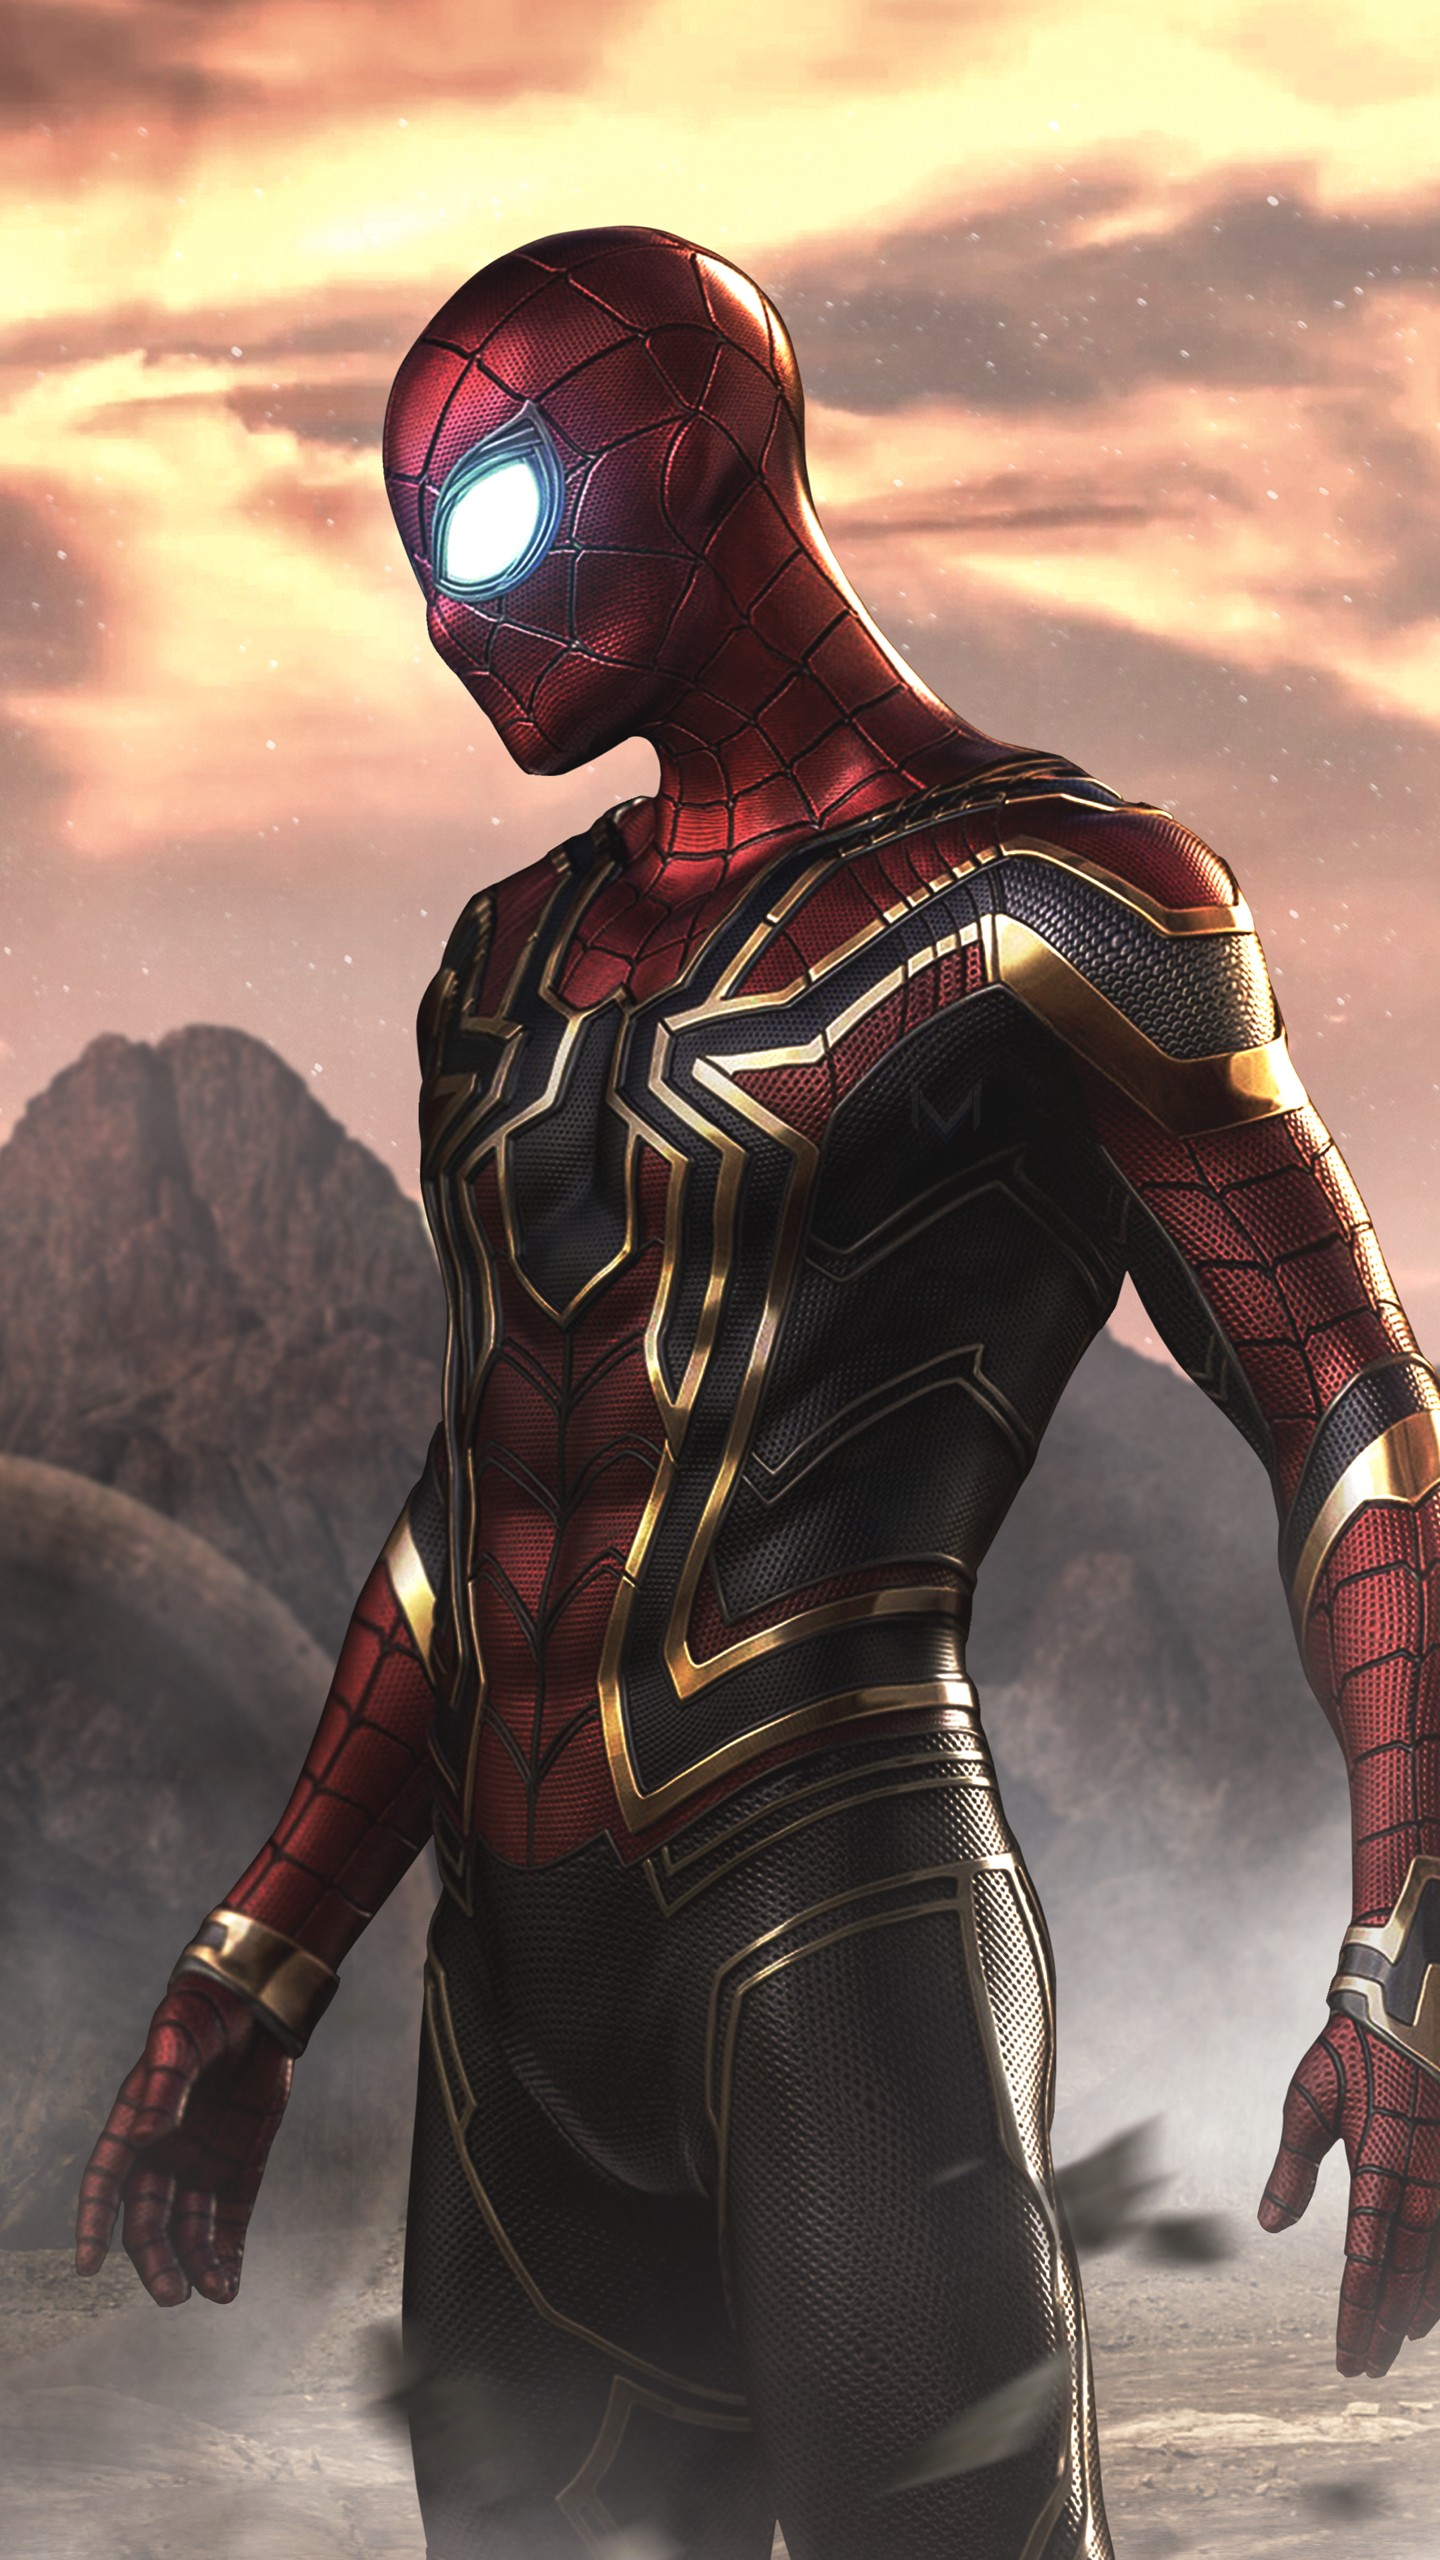 Full Hd Wallpapers  High Resolution Iphone 6s Spider Man As Iron Spider 4k Wallpapers Hd Wallpapers